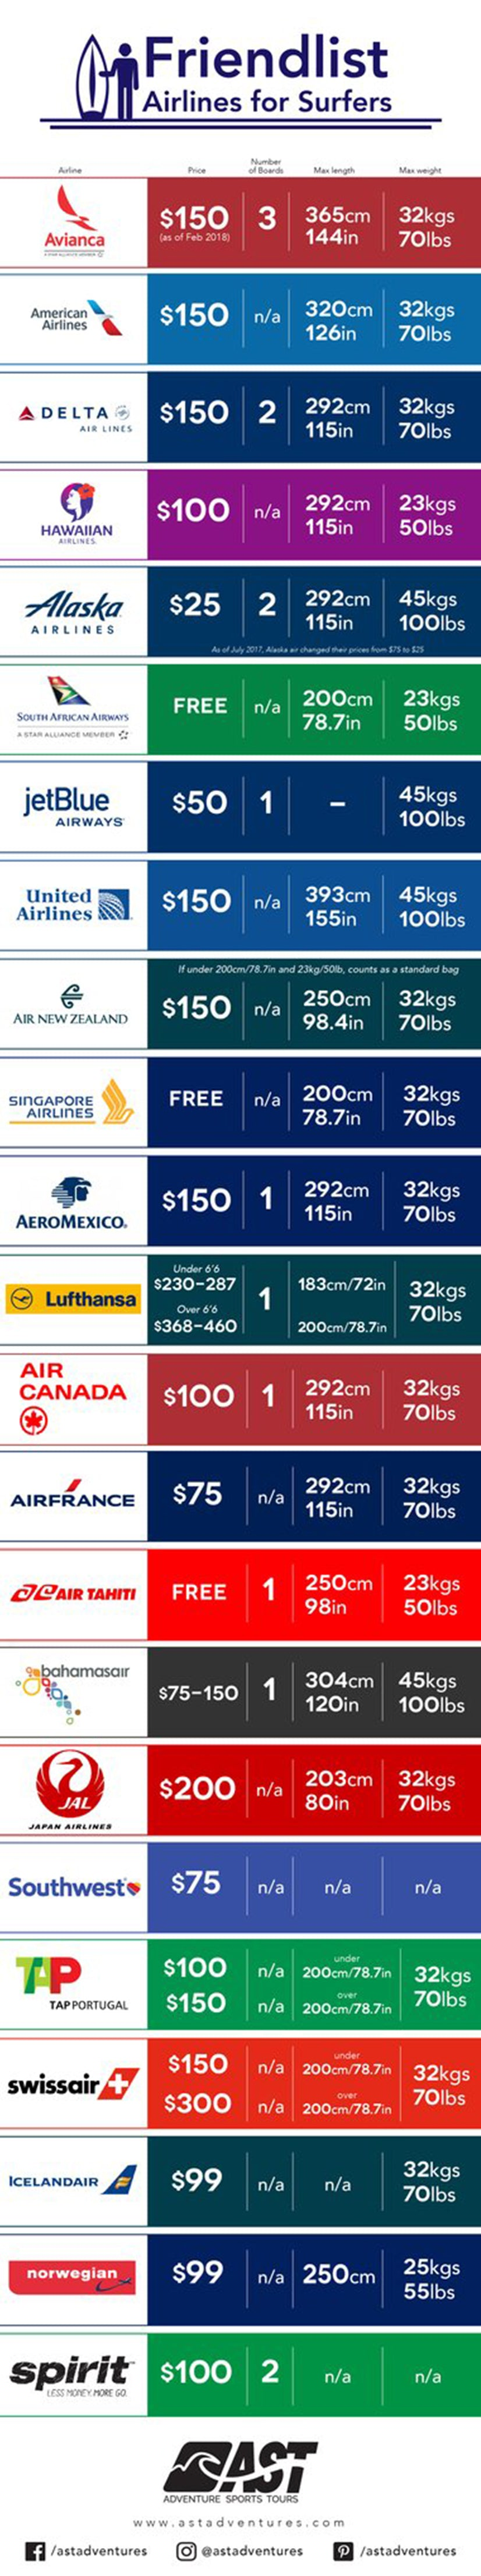 airlines for surfboards